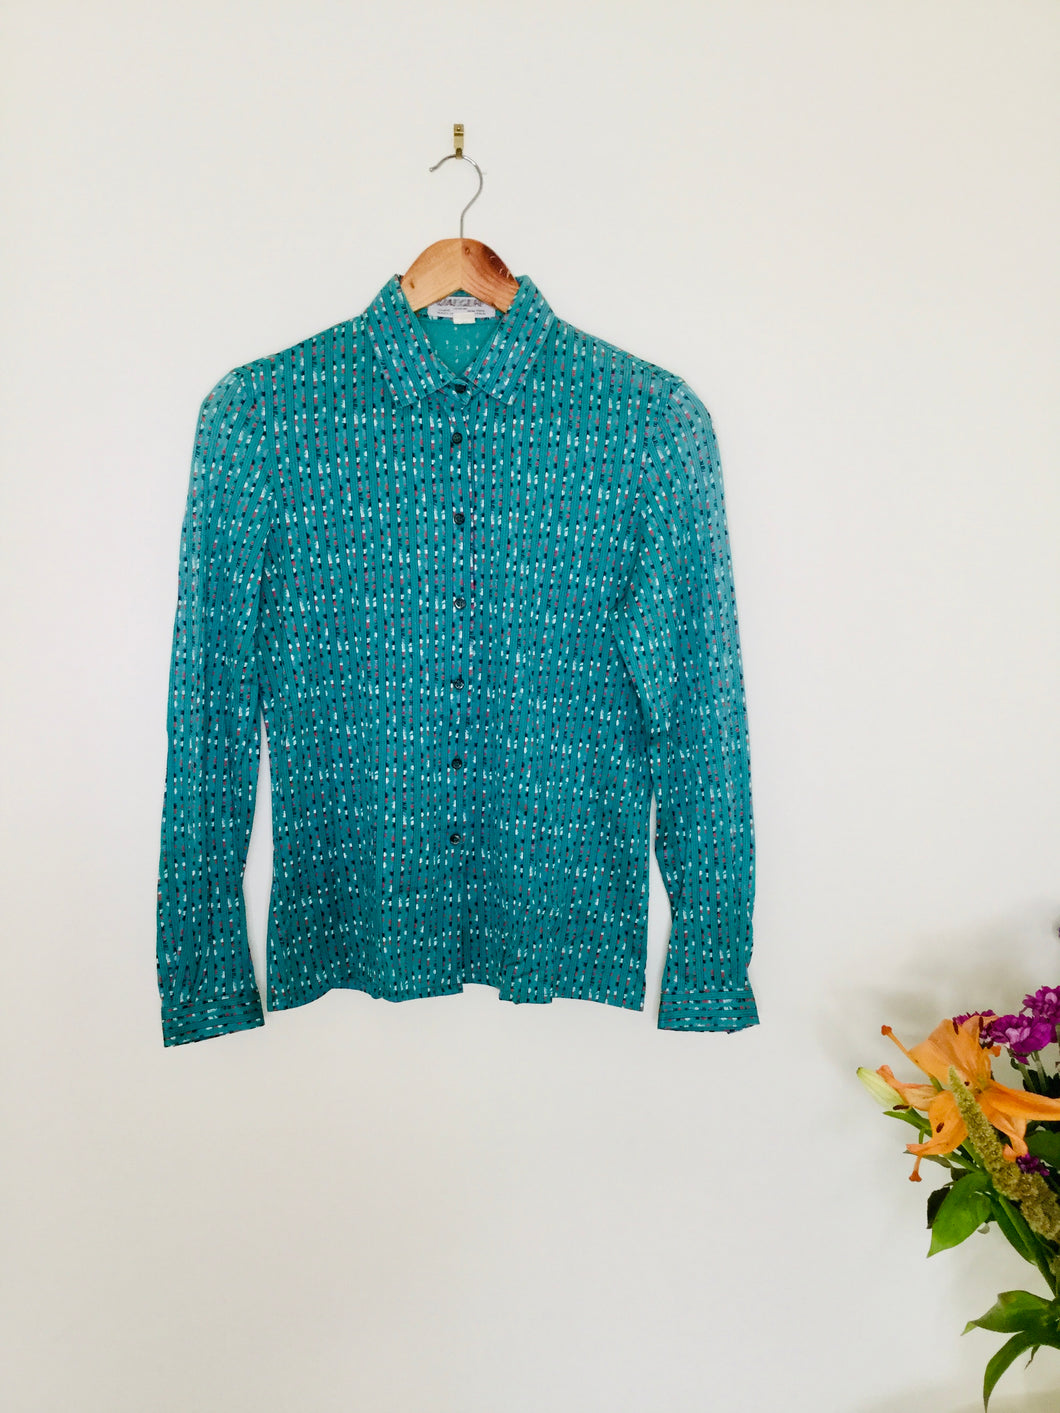 Vintage teal blouse by Jaeger